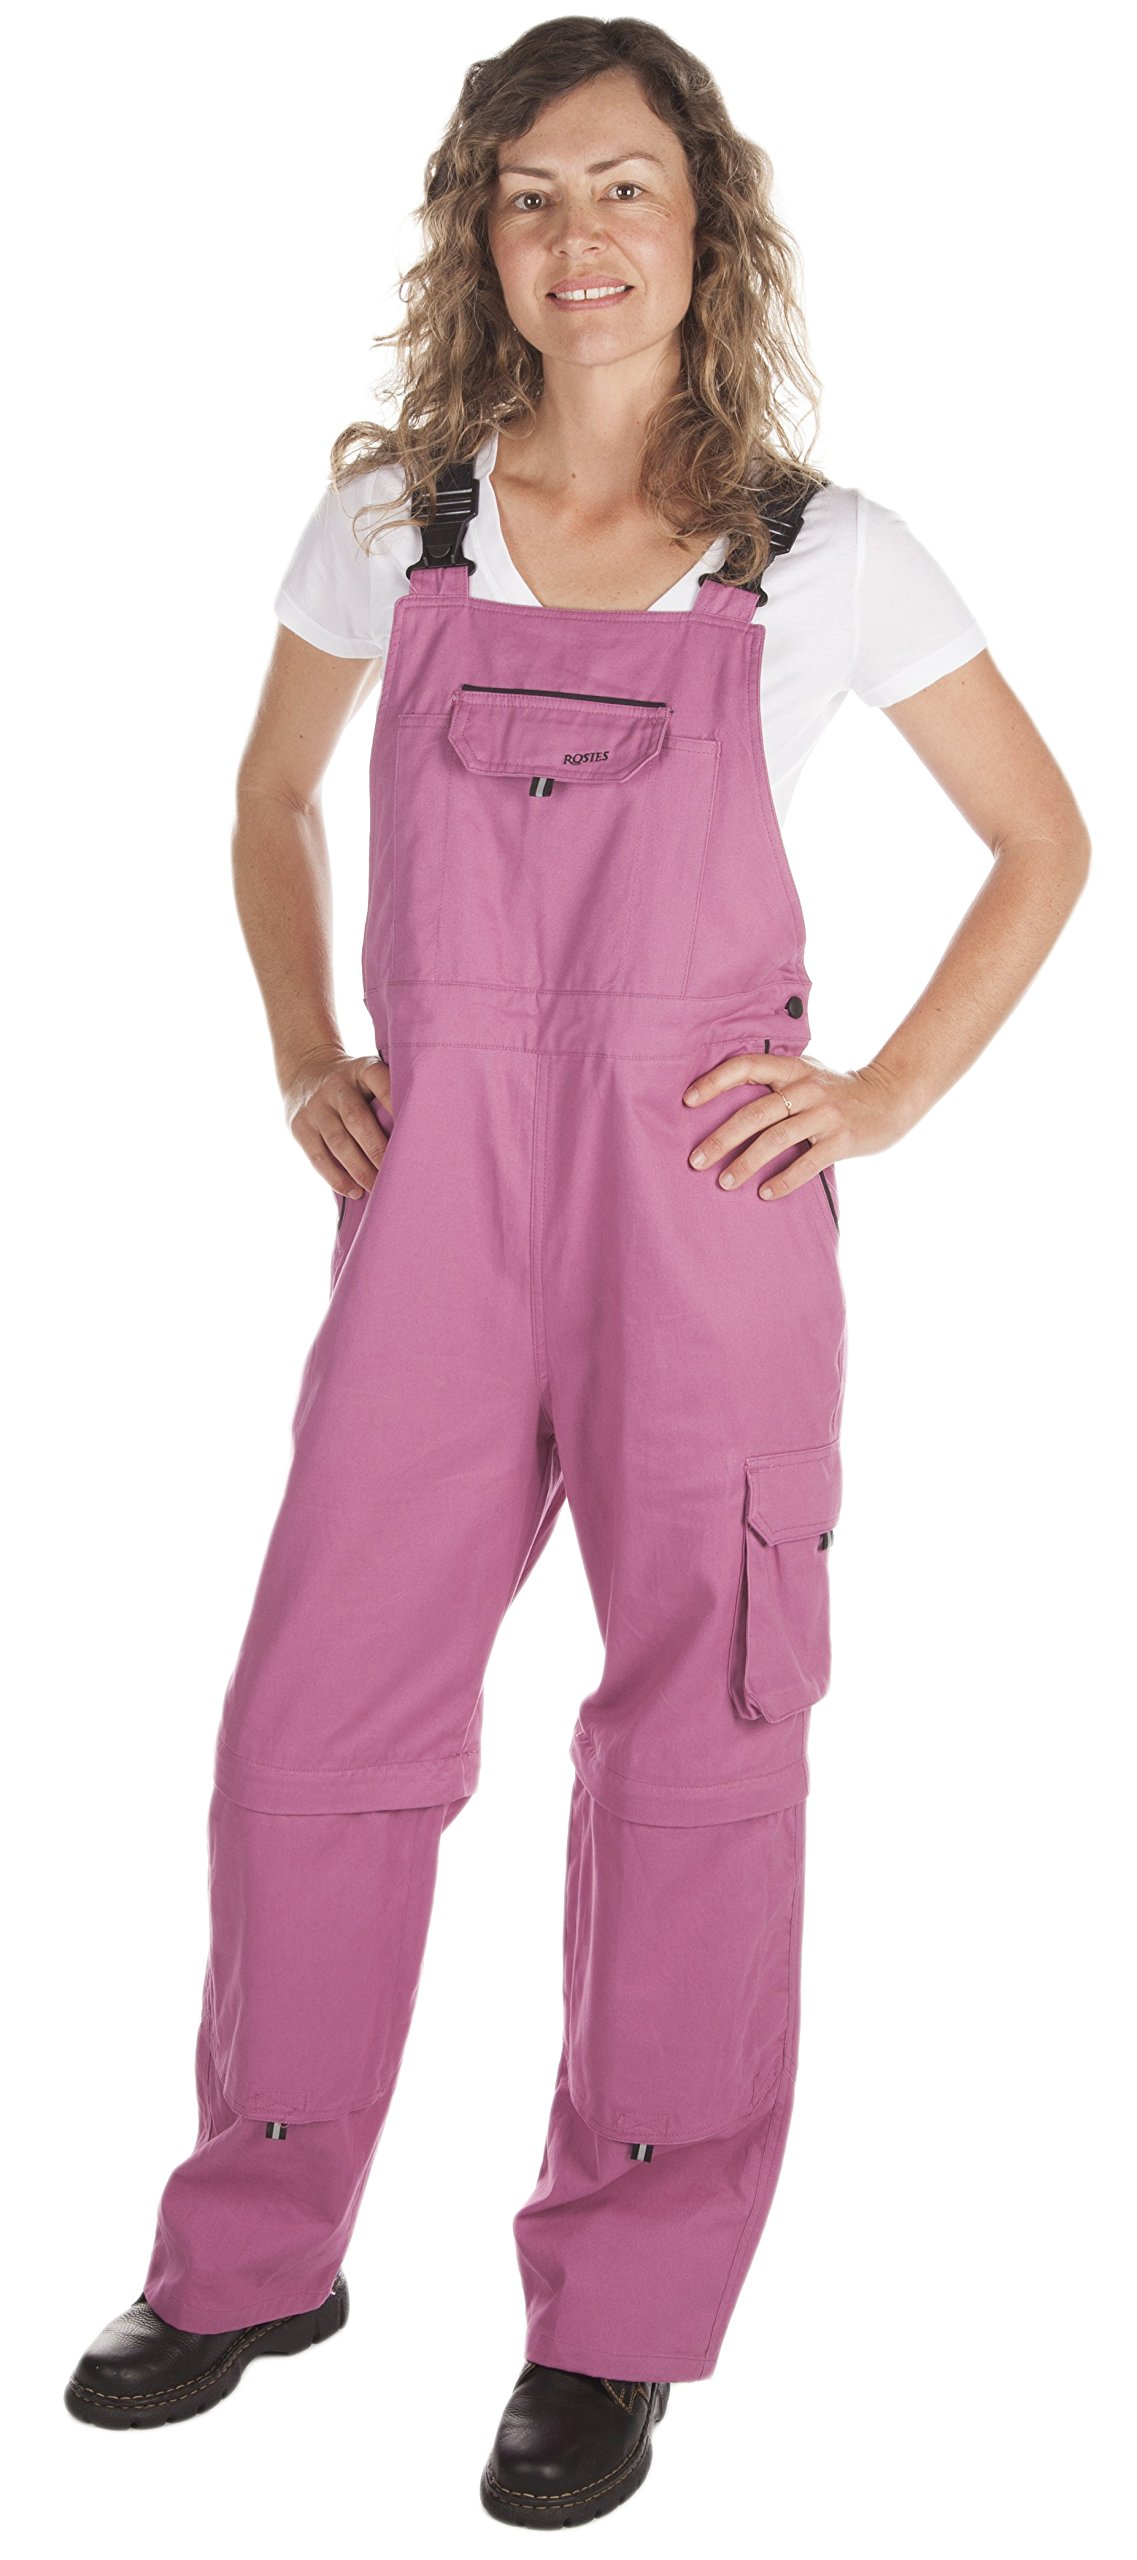 Rosies Work Wear Overalls for Women| Work & Gardening Cotton Bib Overalls (Knee Pads are NOT Included)